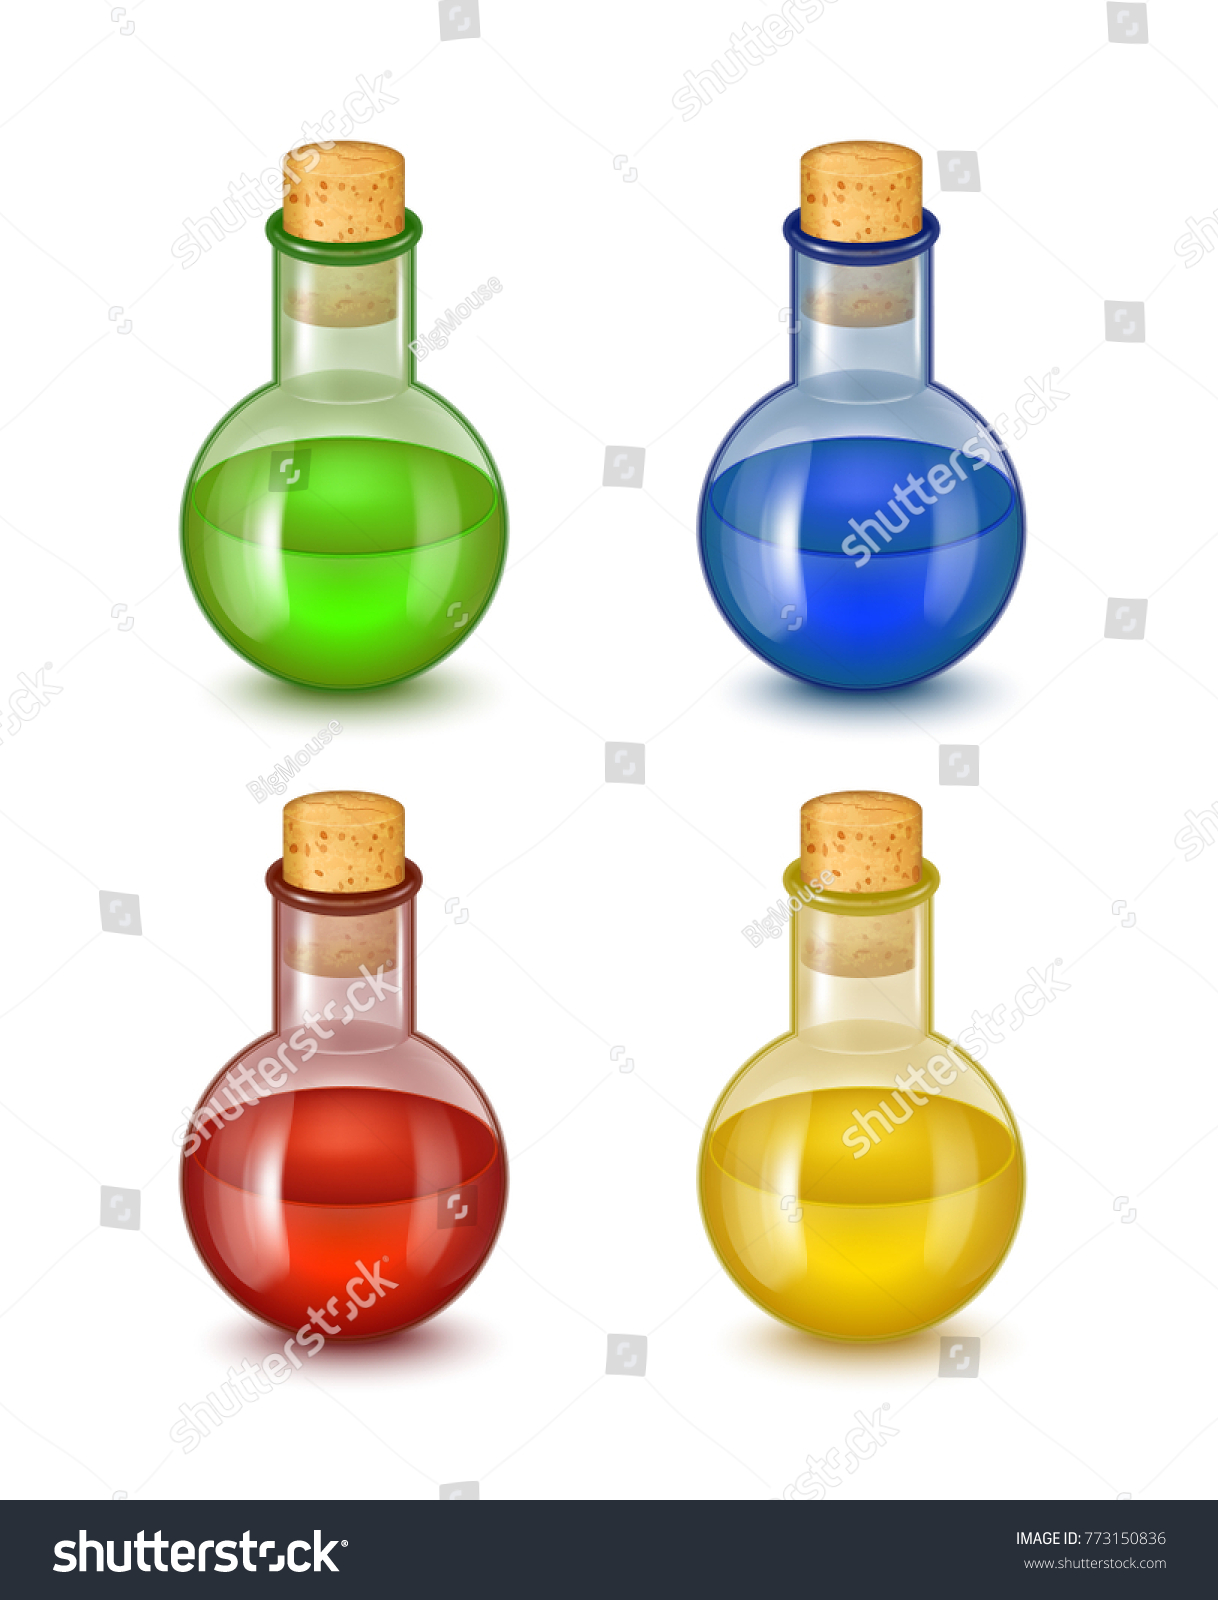 Realistic detailed glass bottle toxic poison stock vektorgrafik realistic detailed glass bottle of toxic poison set symbol of chemical danger vector illustration biocorpaavc